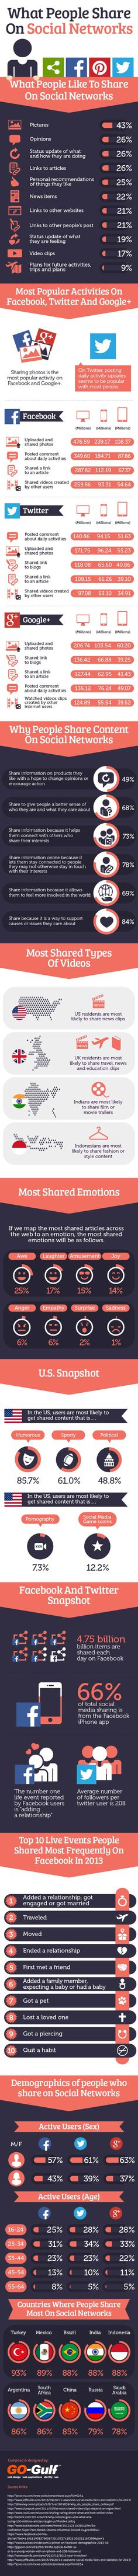 What people share infografic